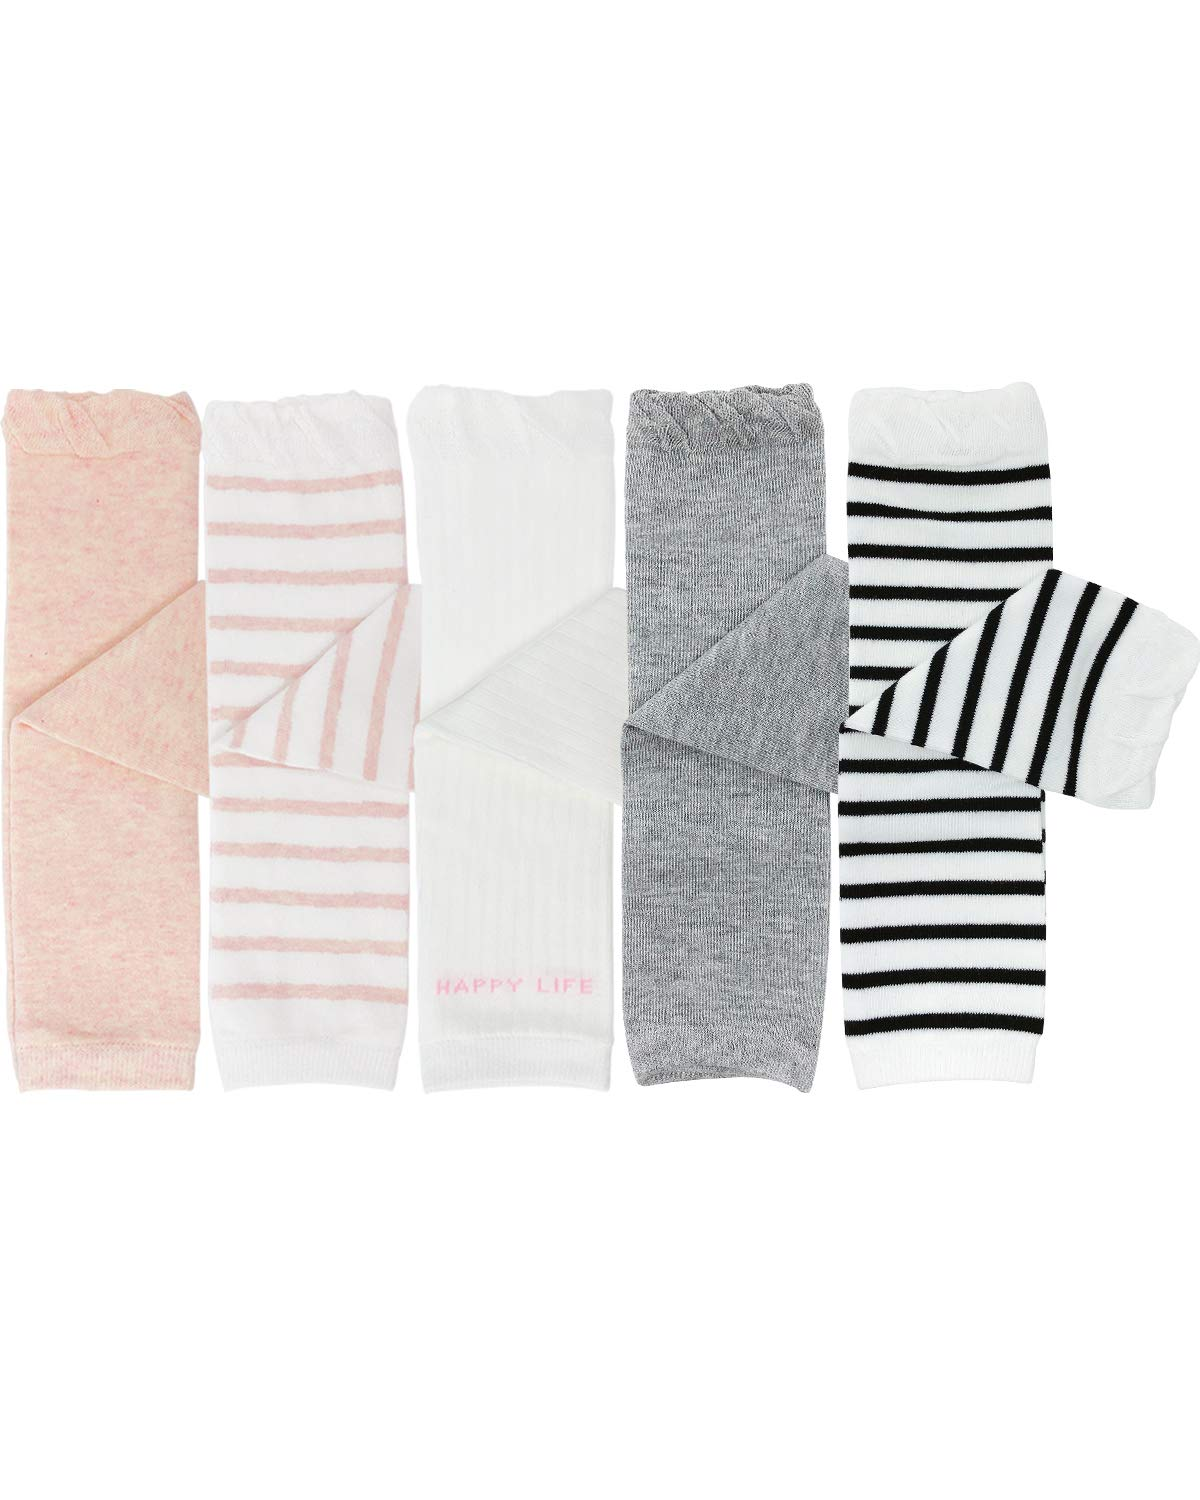 ALLYDREW Pastel Baby & Toddler Leg Warmers (Set of 5), Pink & Gray by allydrew